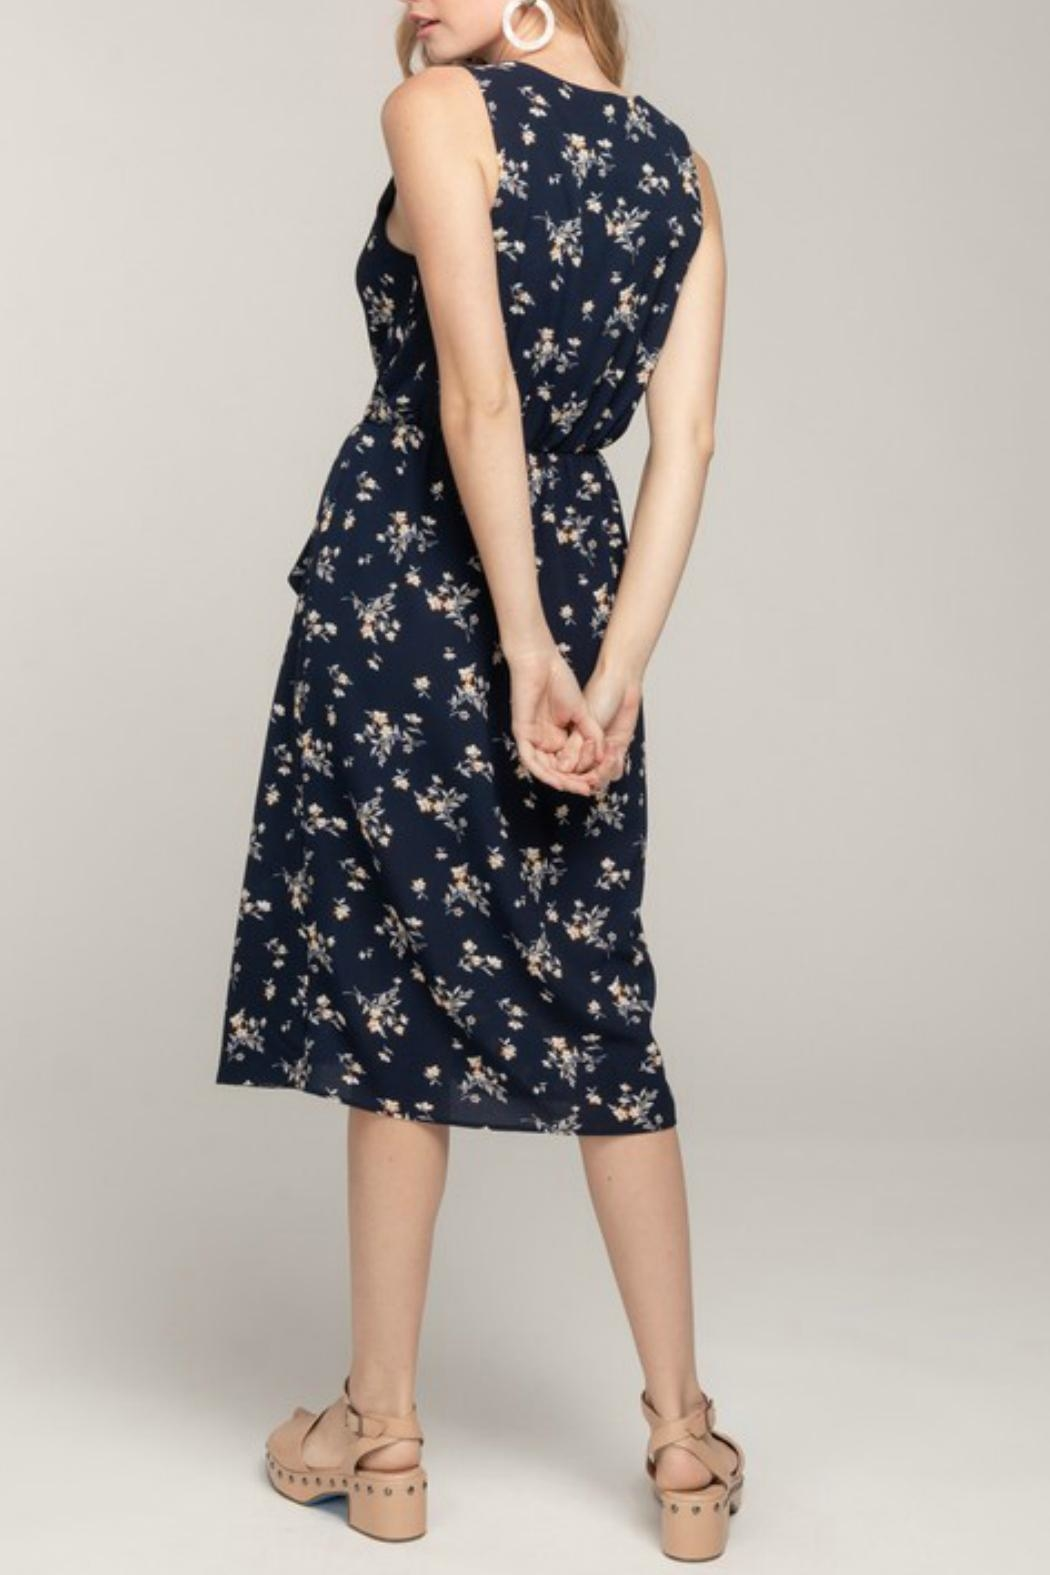 Everly Floral Wrap Midi-Dress - Front Full Image